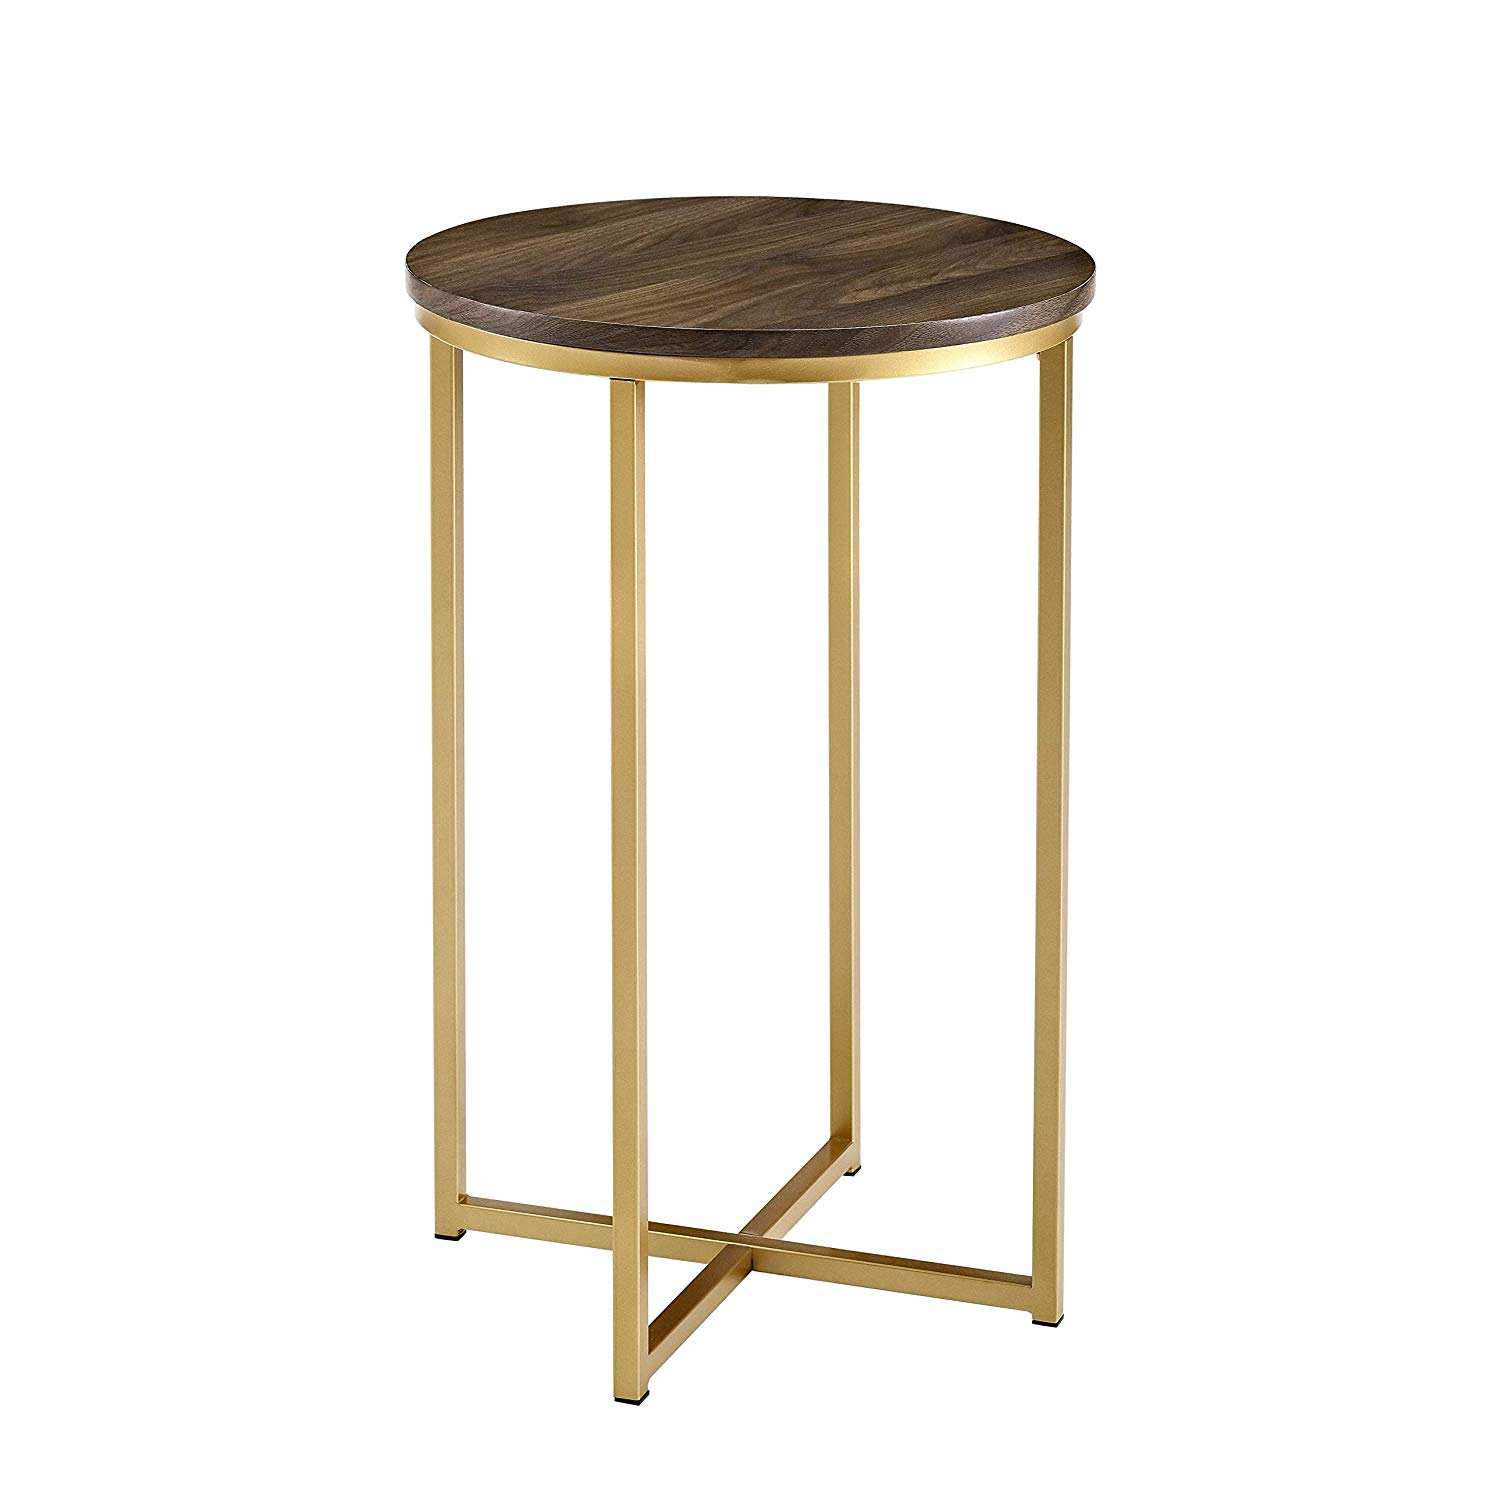 modern round side table freya accent gold dark walnut goldtone finish wood kitchen dining target luxury lamps oak end tables with drawers hampton bay patio set wooden bedside inch